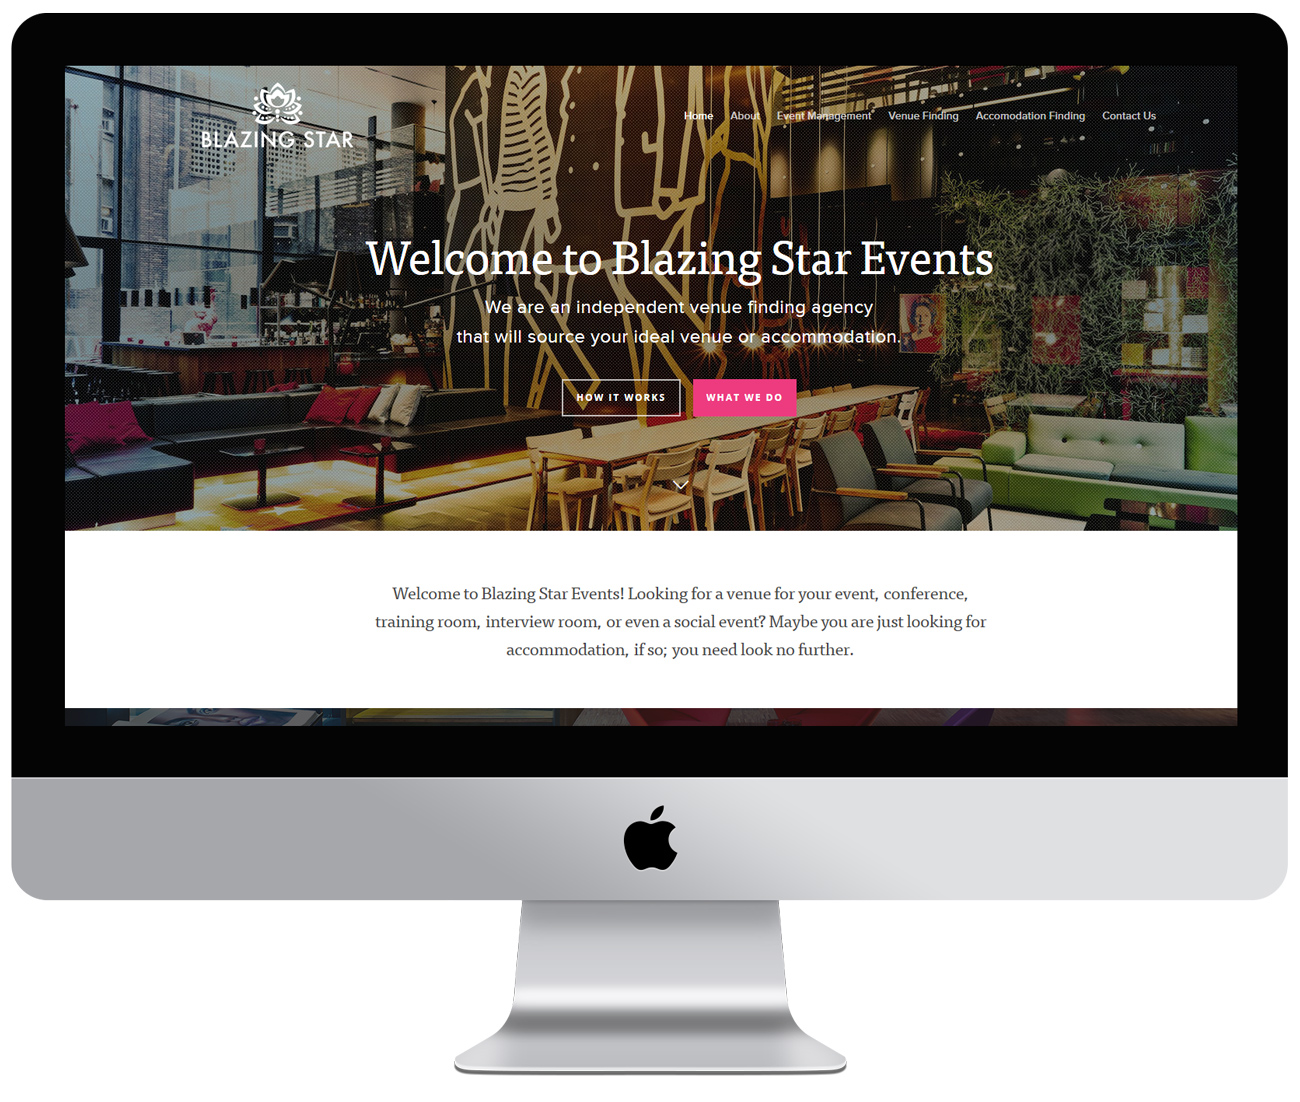 Blazing Star Events website